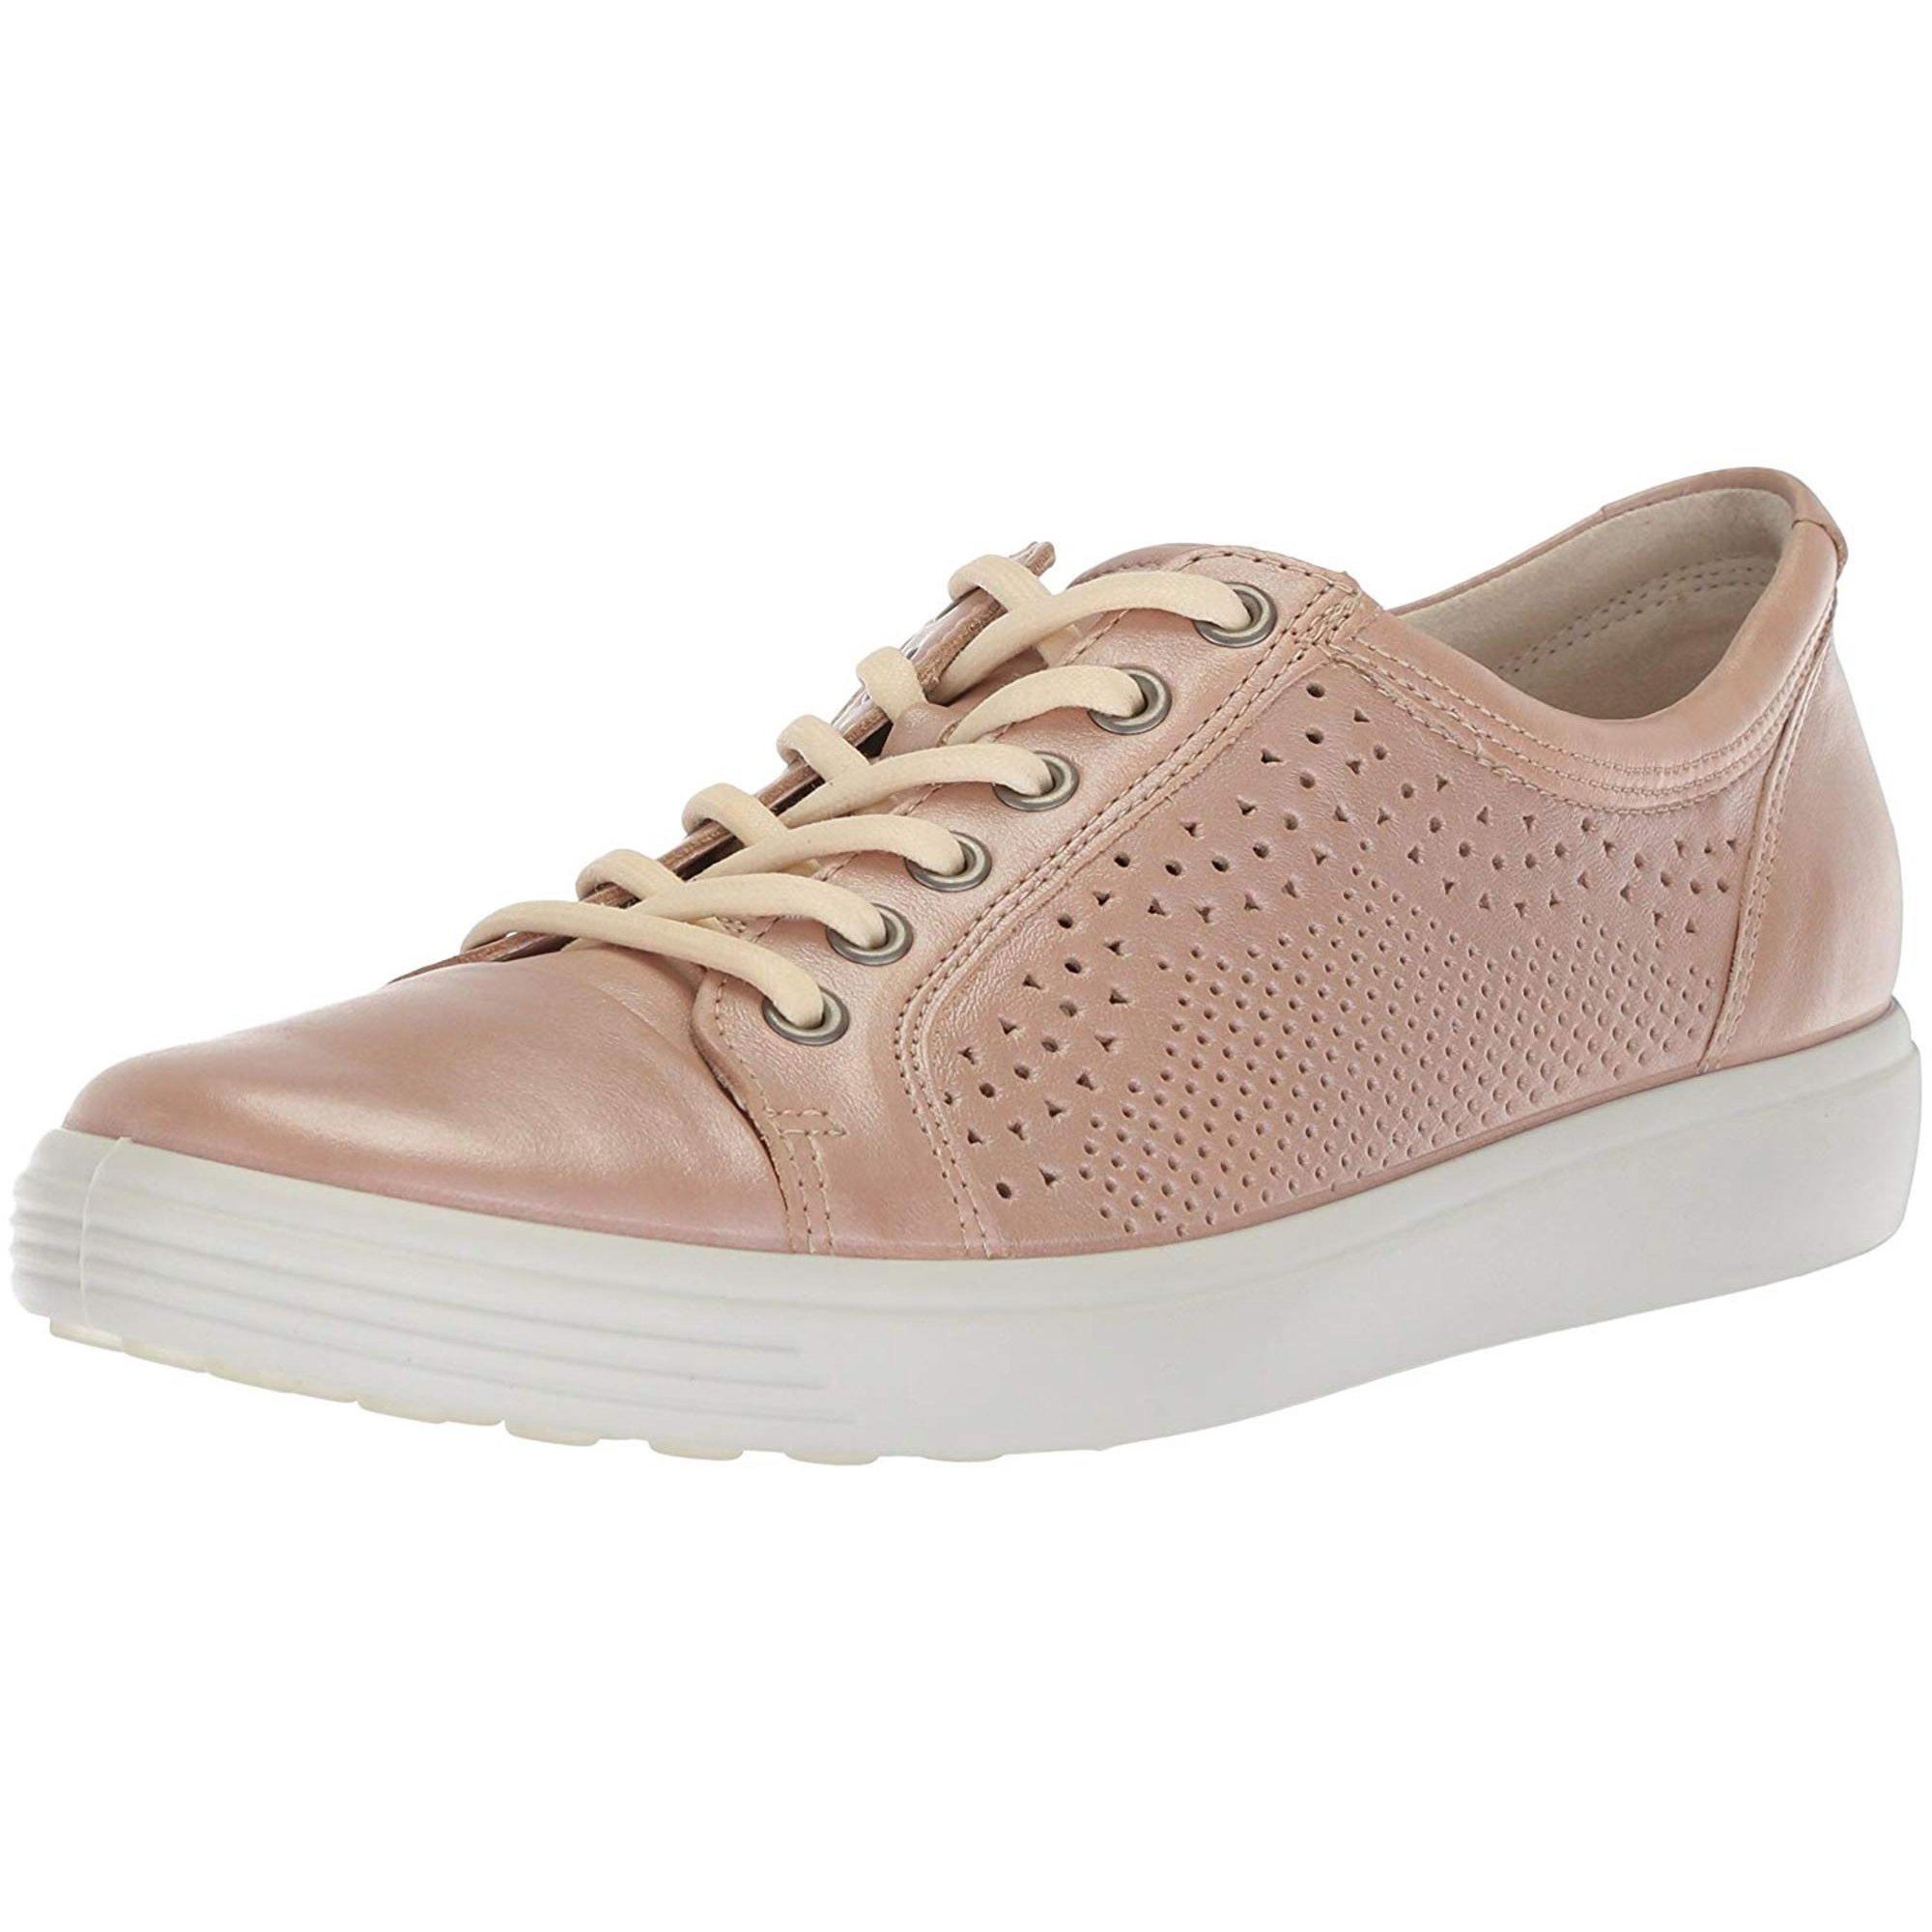 75693900 ECCO Womens Soft 7 Low Top Lace Up Fashion Sneakers | Walmart Canada